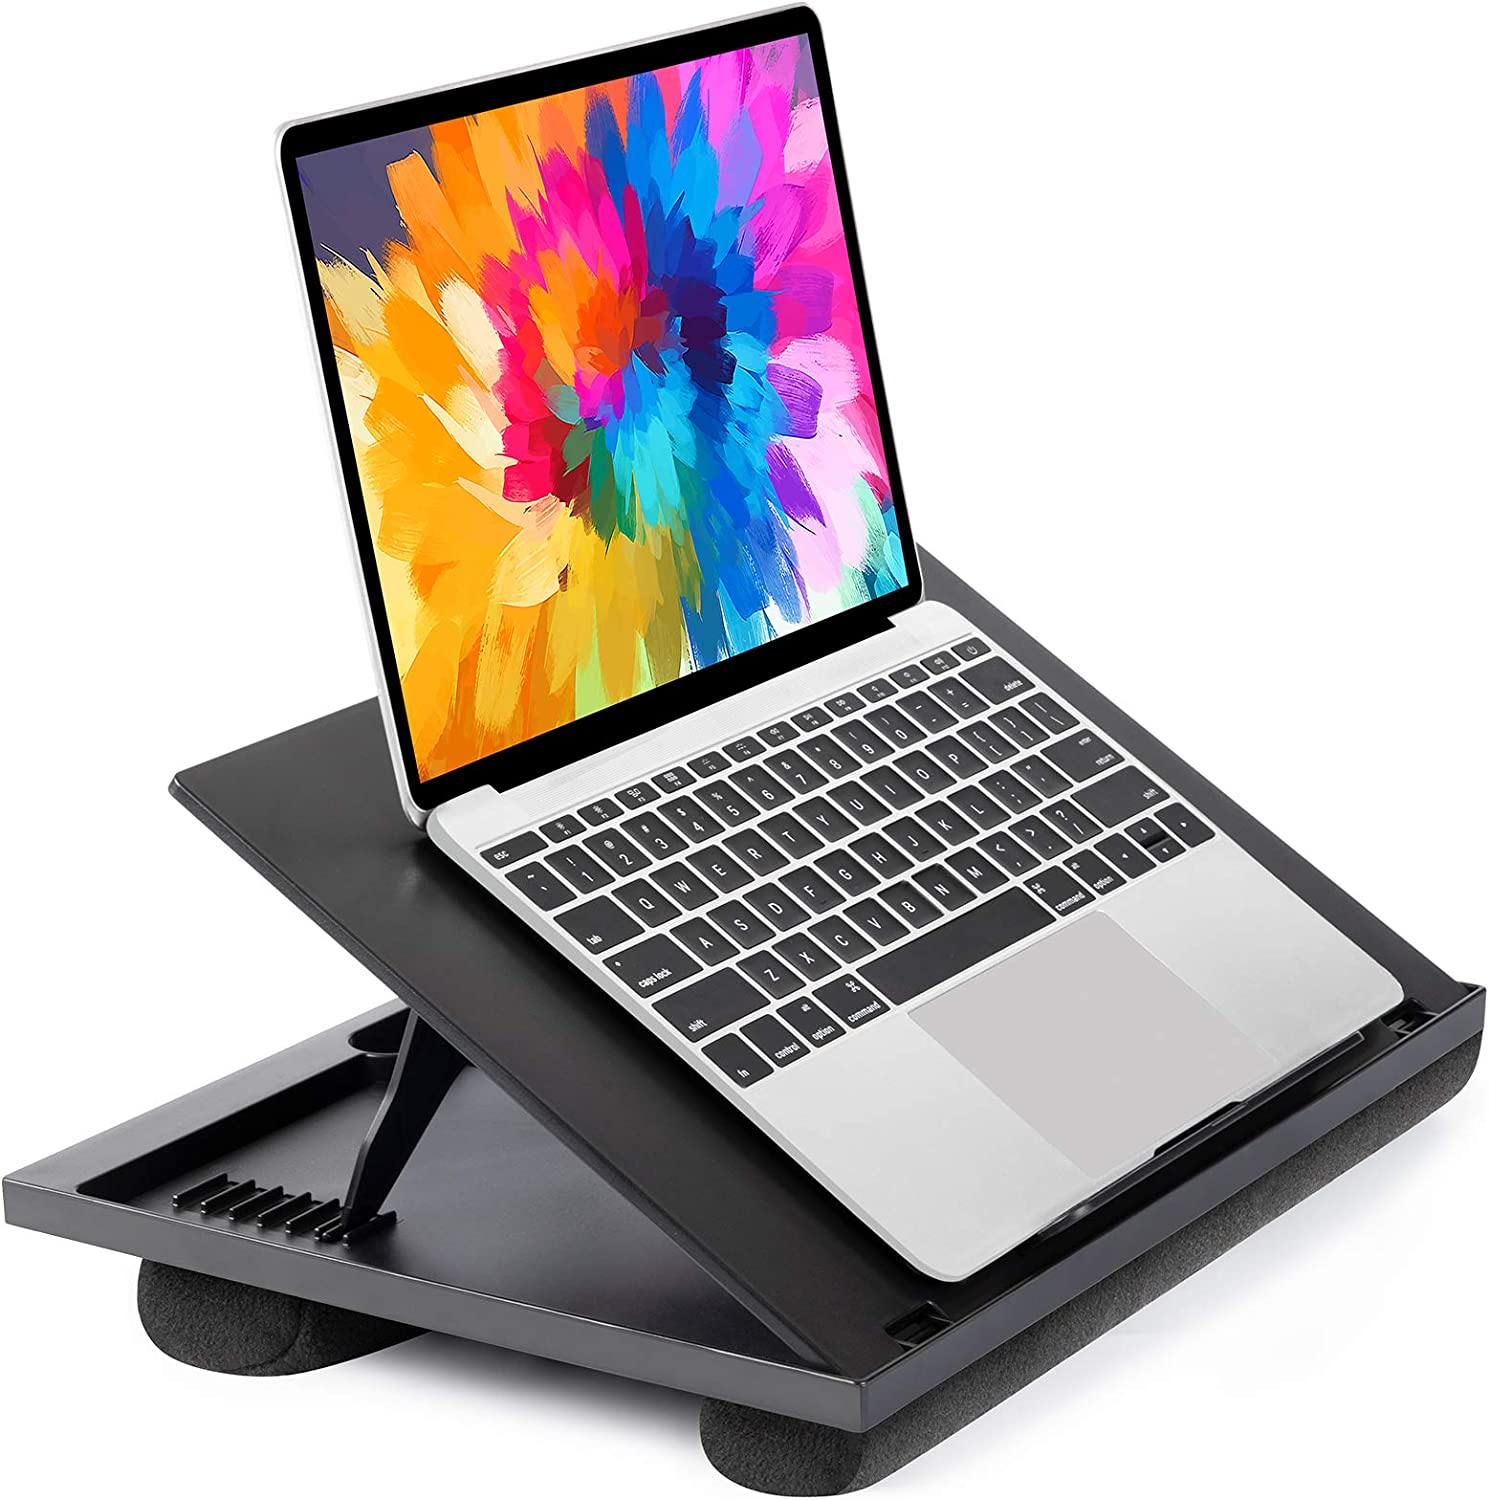 Amazon.com: Adjustable Lap Desk - with 8 Adjustable Angles & Dual Cushions  Laptop Stand for Car Laptop Desk, Work Table, Lap Writing Board & Drawing  Desk on Sofa or Bed by HUANUO: